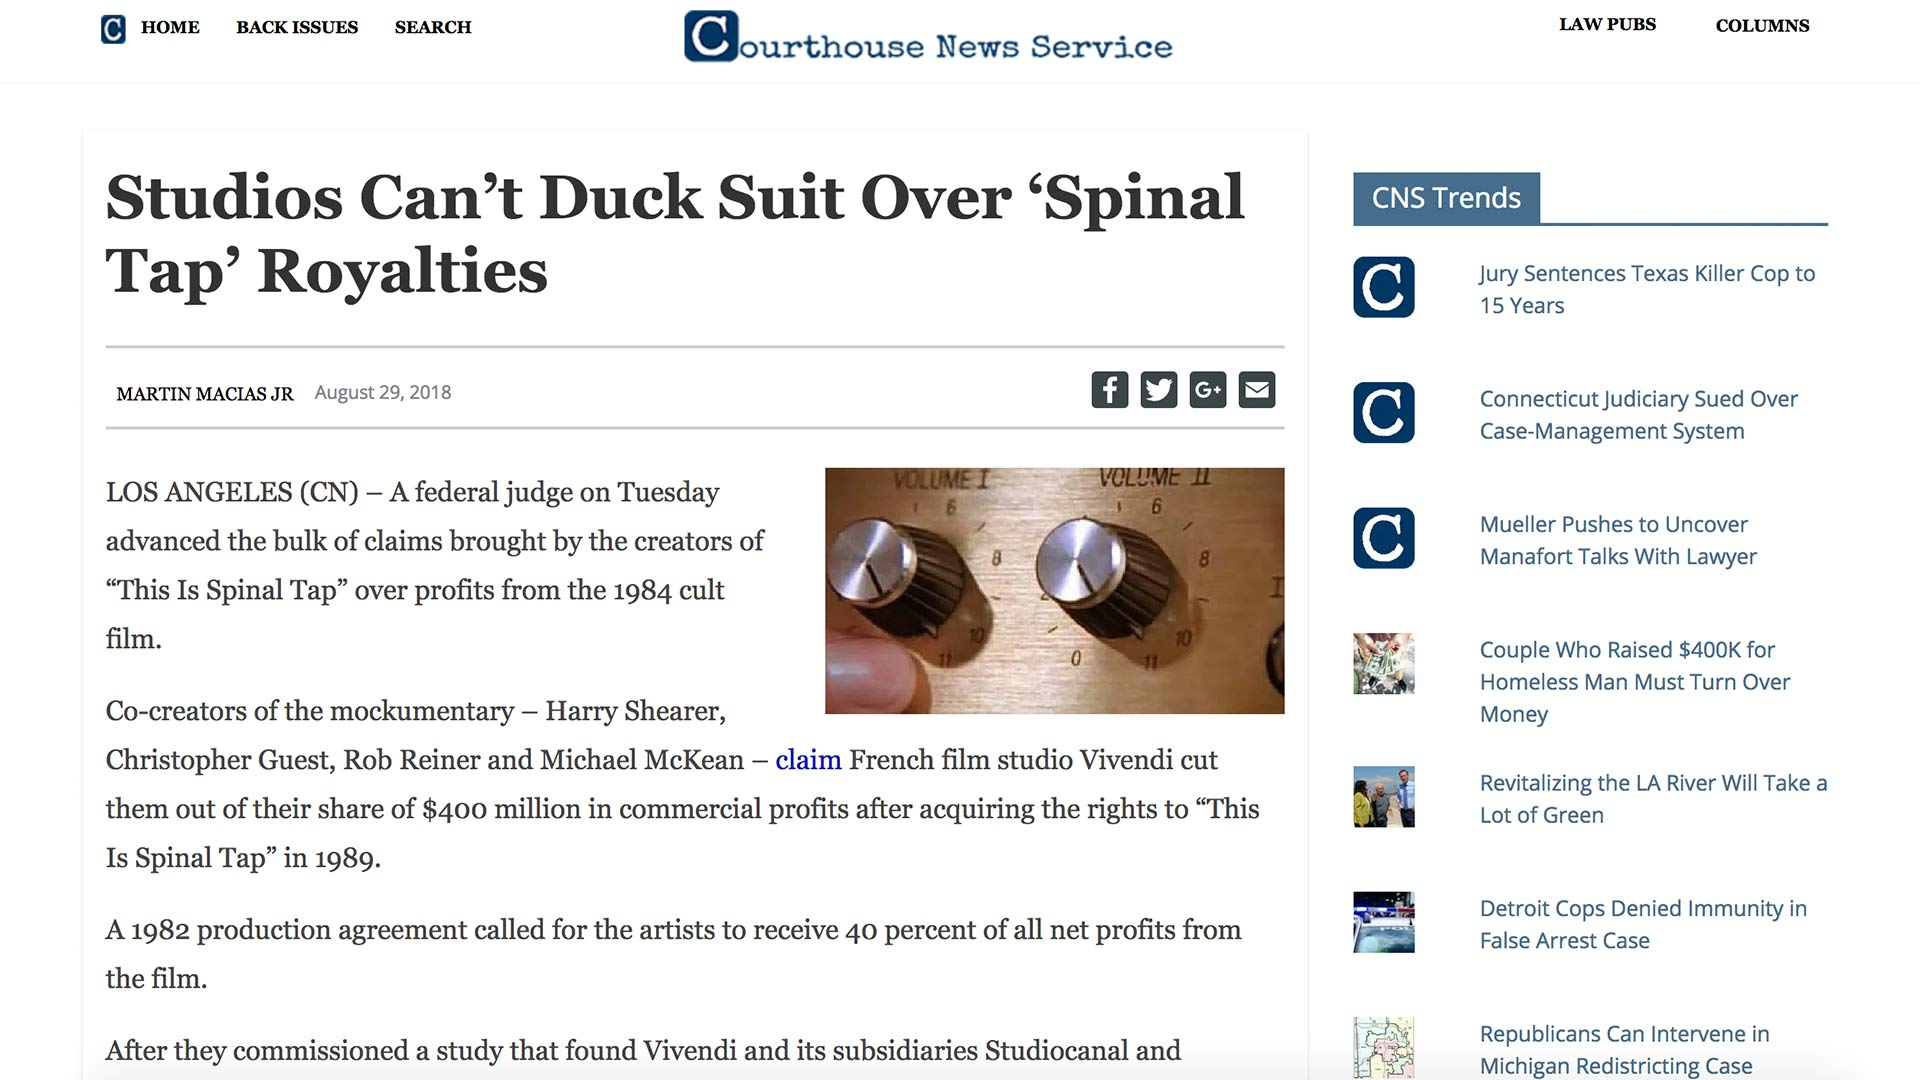 Fairness Rocks News Studios Can't Duck Suit Over 'Spinal Tap' Royalties